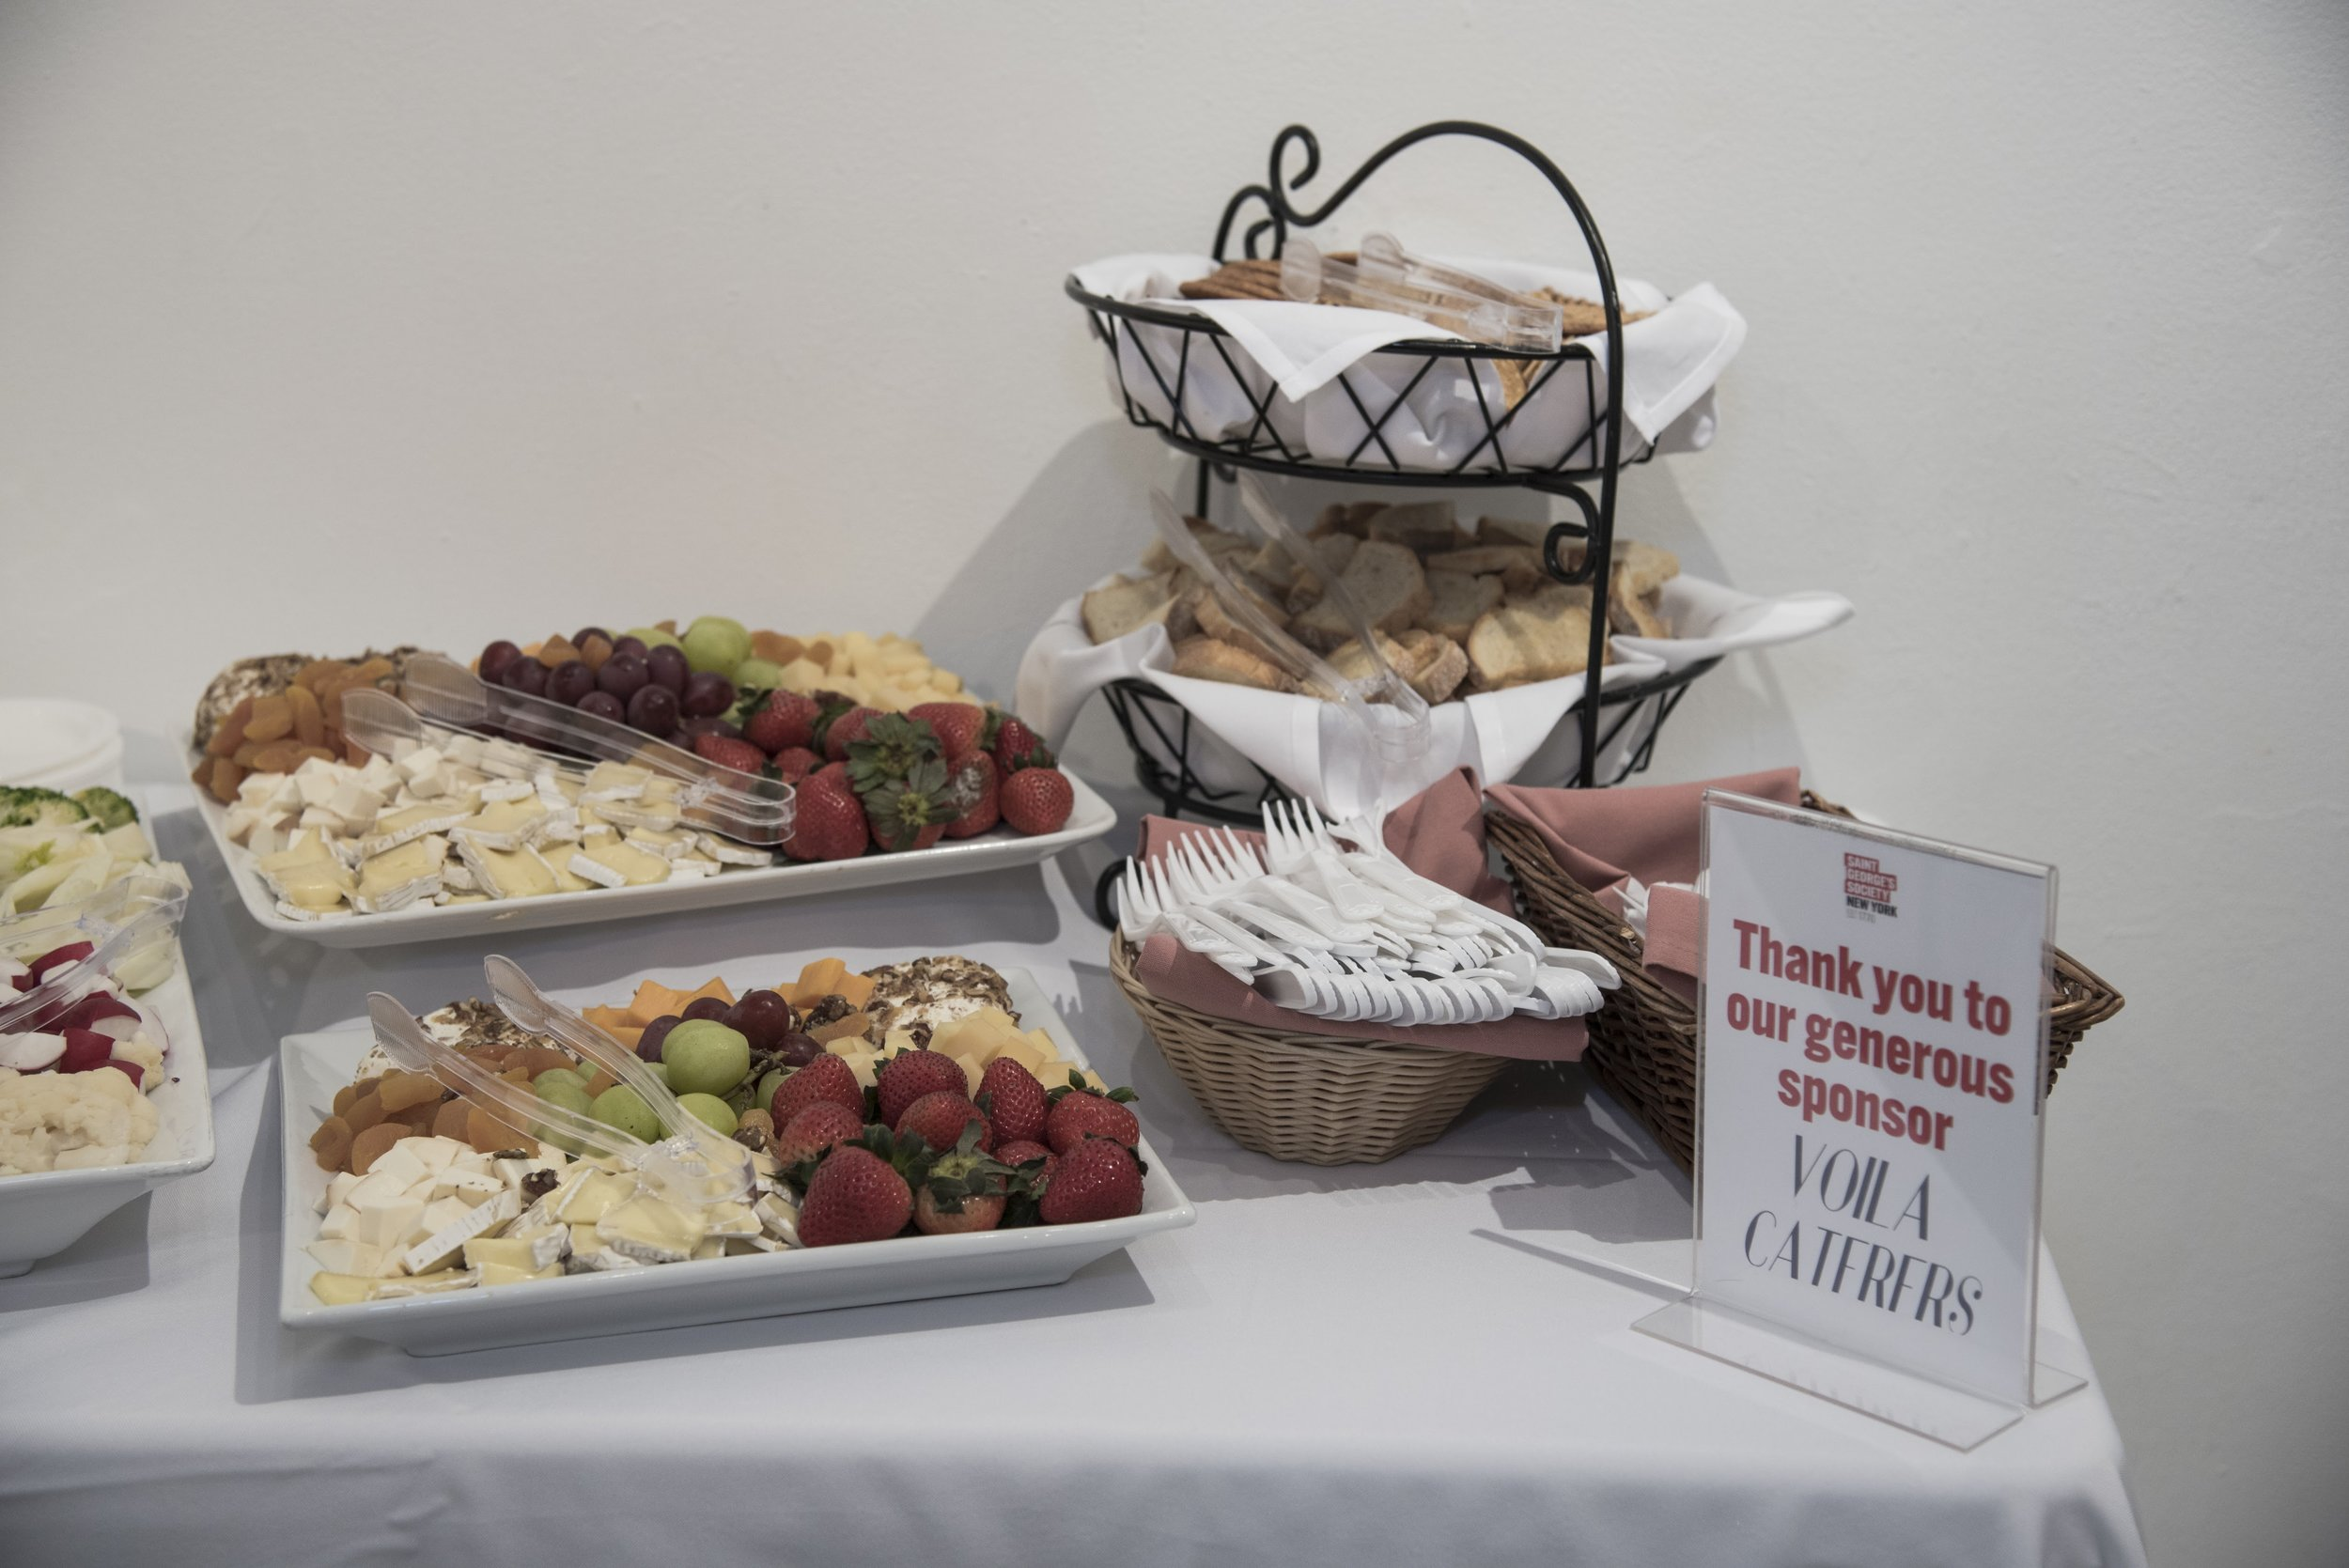 Catering was kindly sponsored by  Voila Caterers .